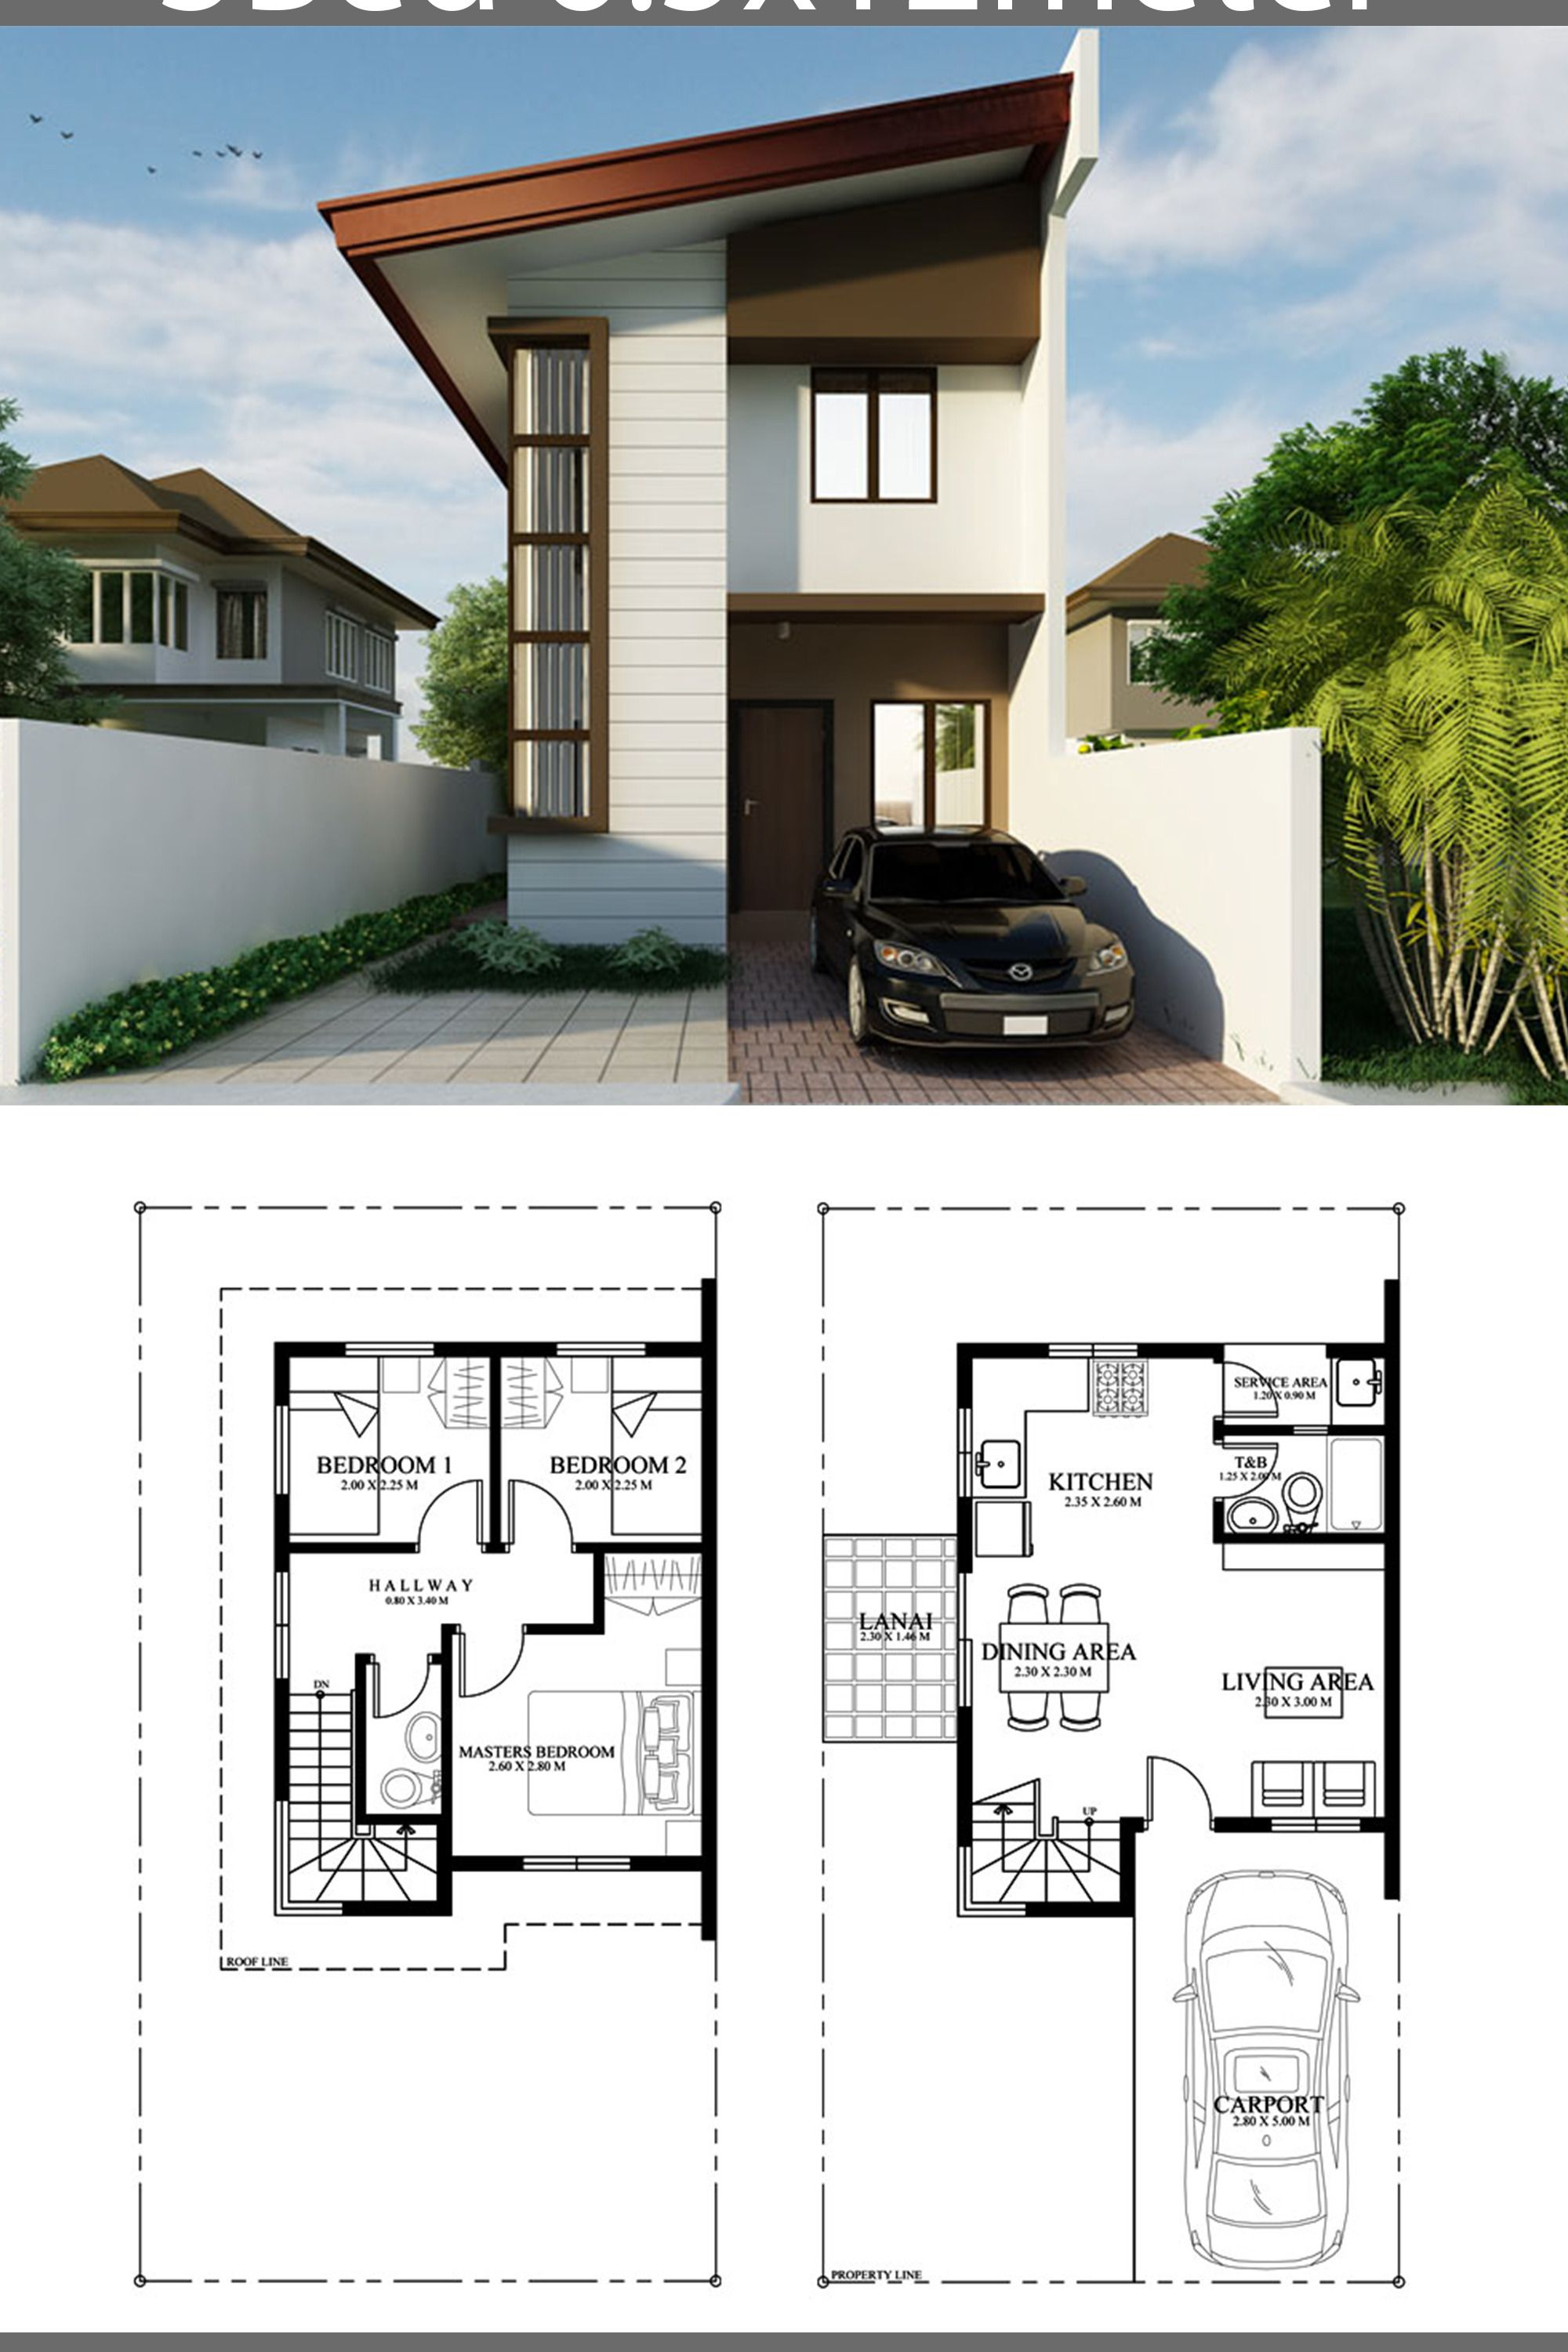 Pin By Soleman On Ceiling Light Design Model House Plan Small House Design Plans Architectural House Plans